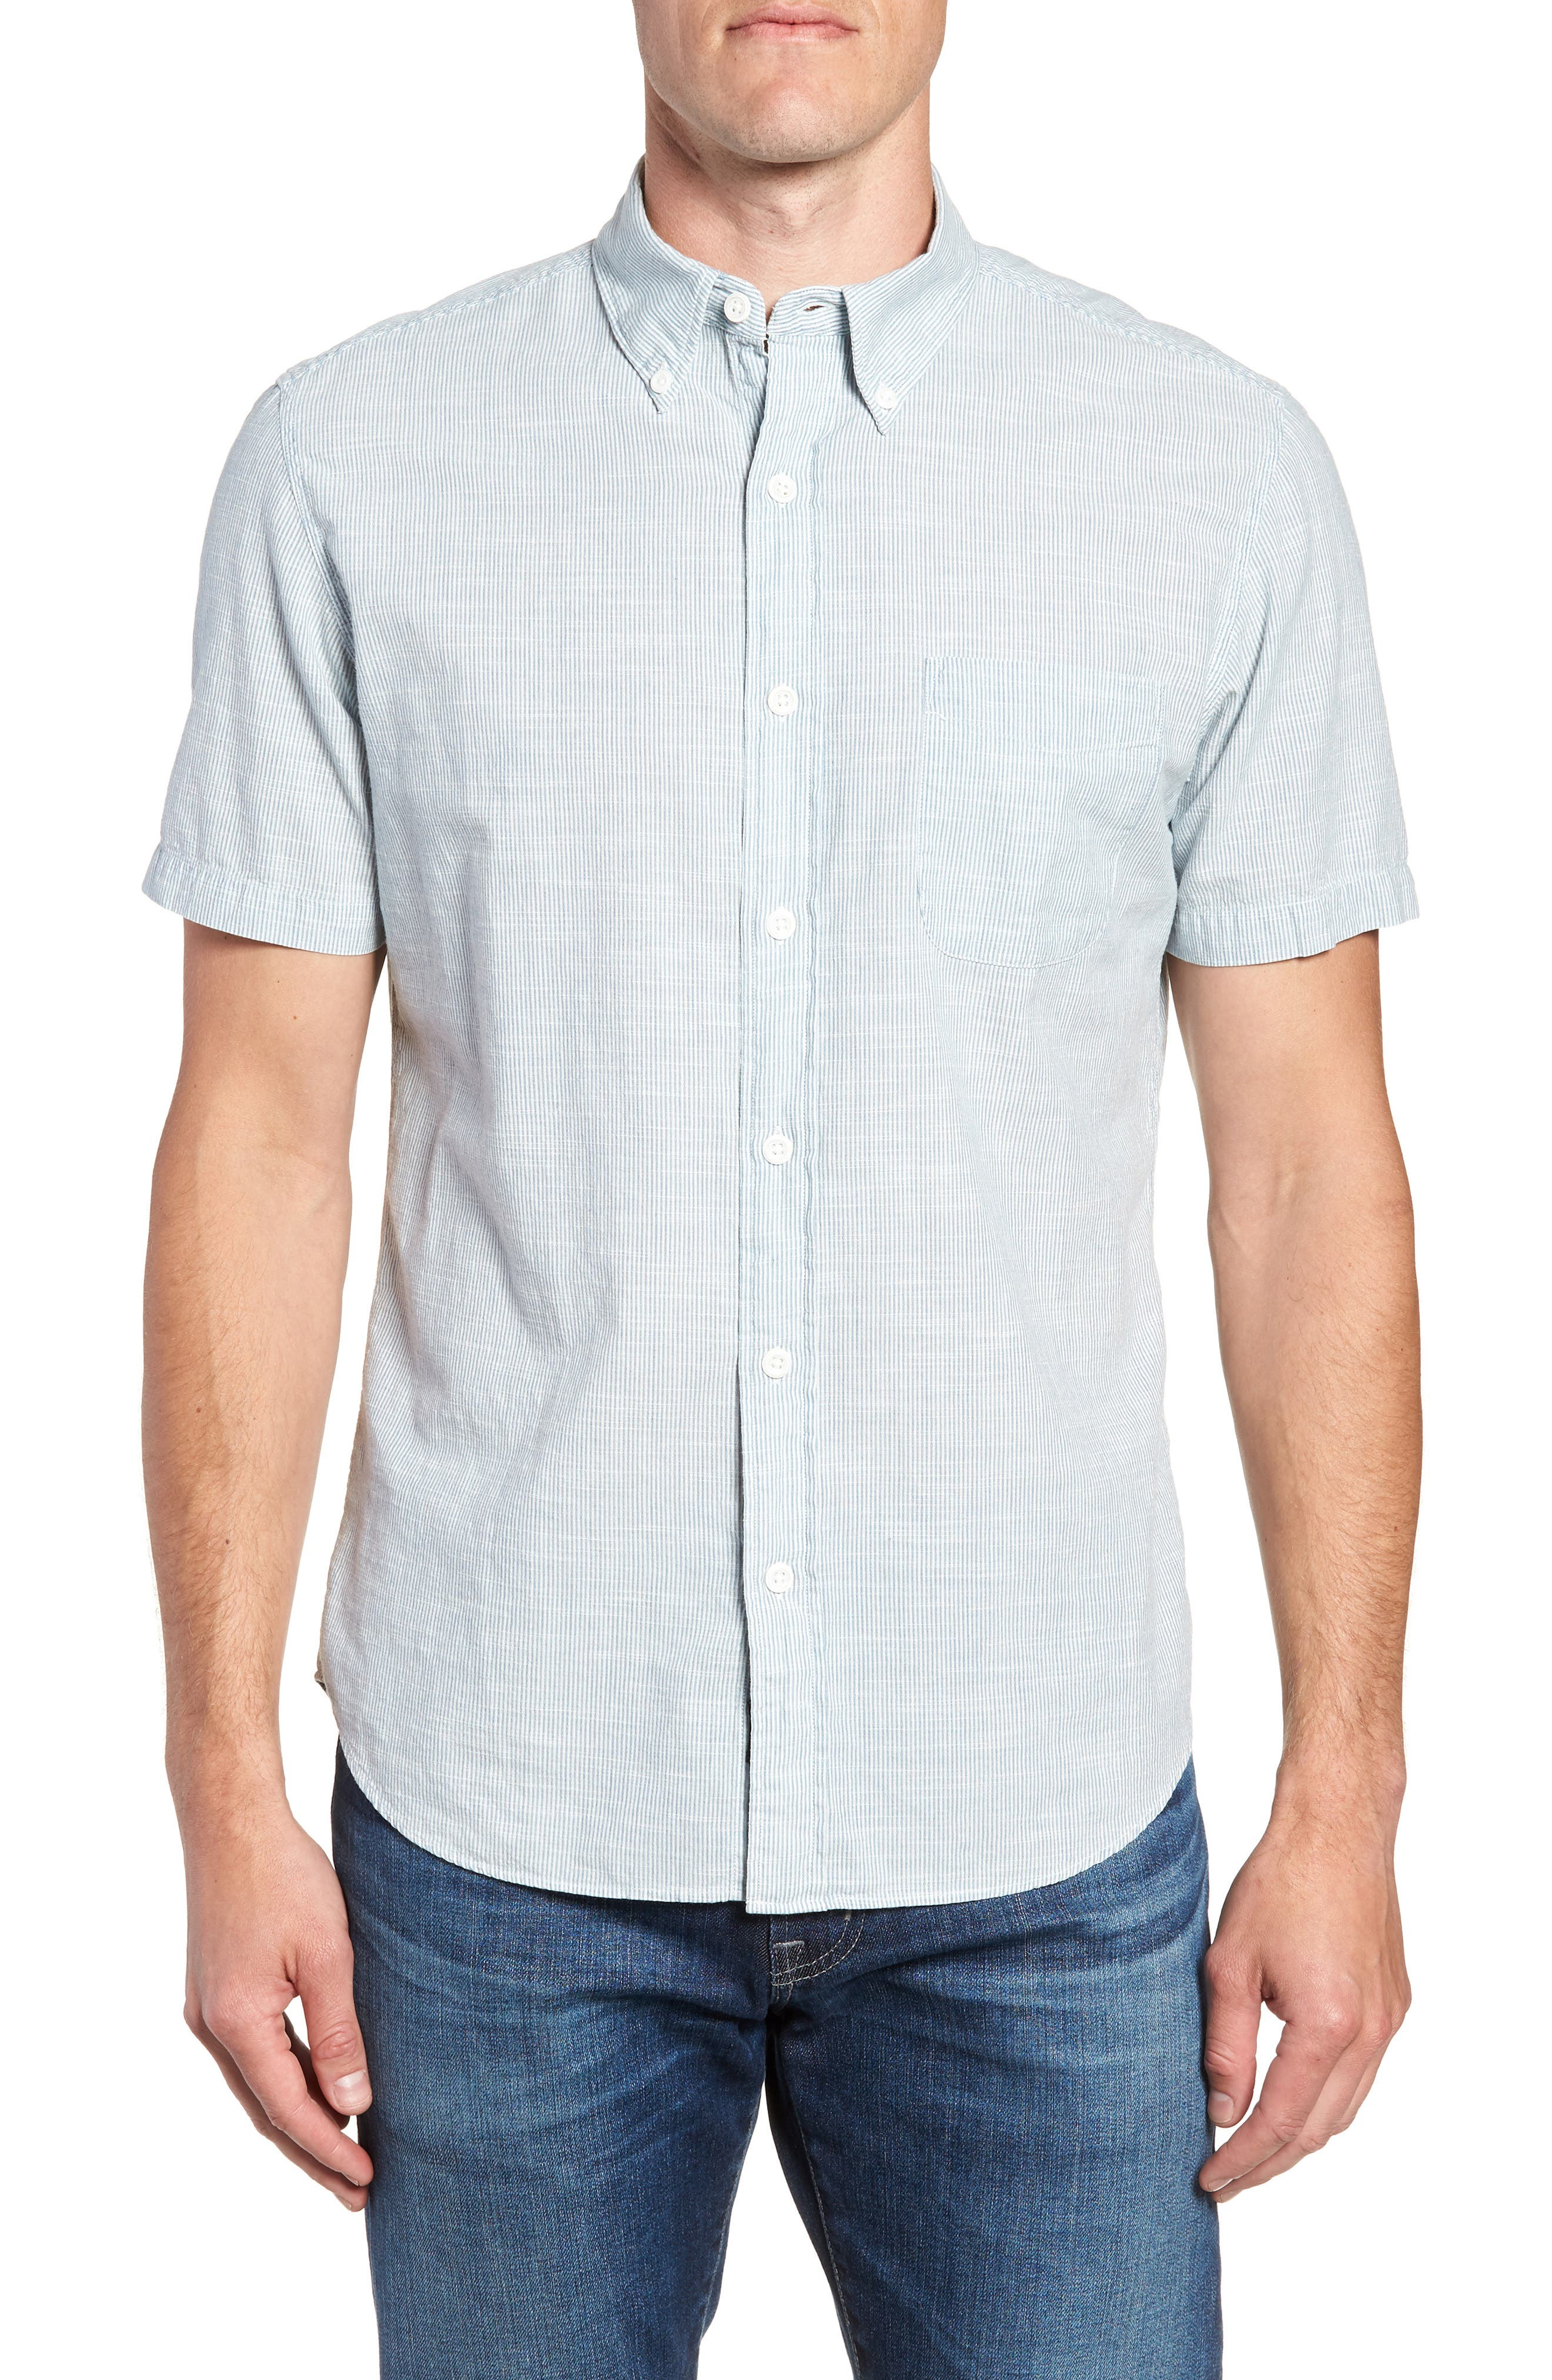 Pacific Pinstripe Sport Shirt,                         Main,                         color, Summer White Stripe